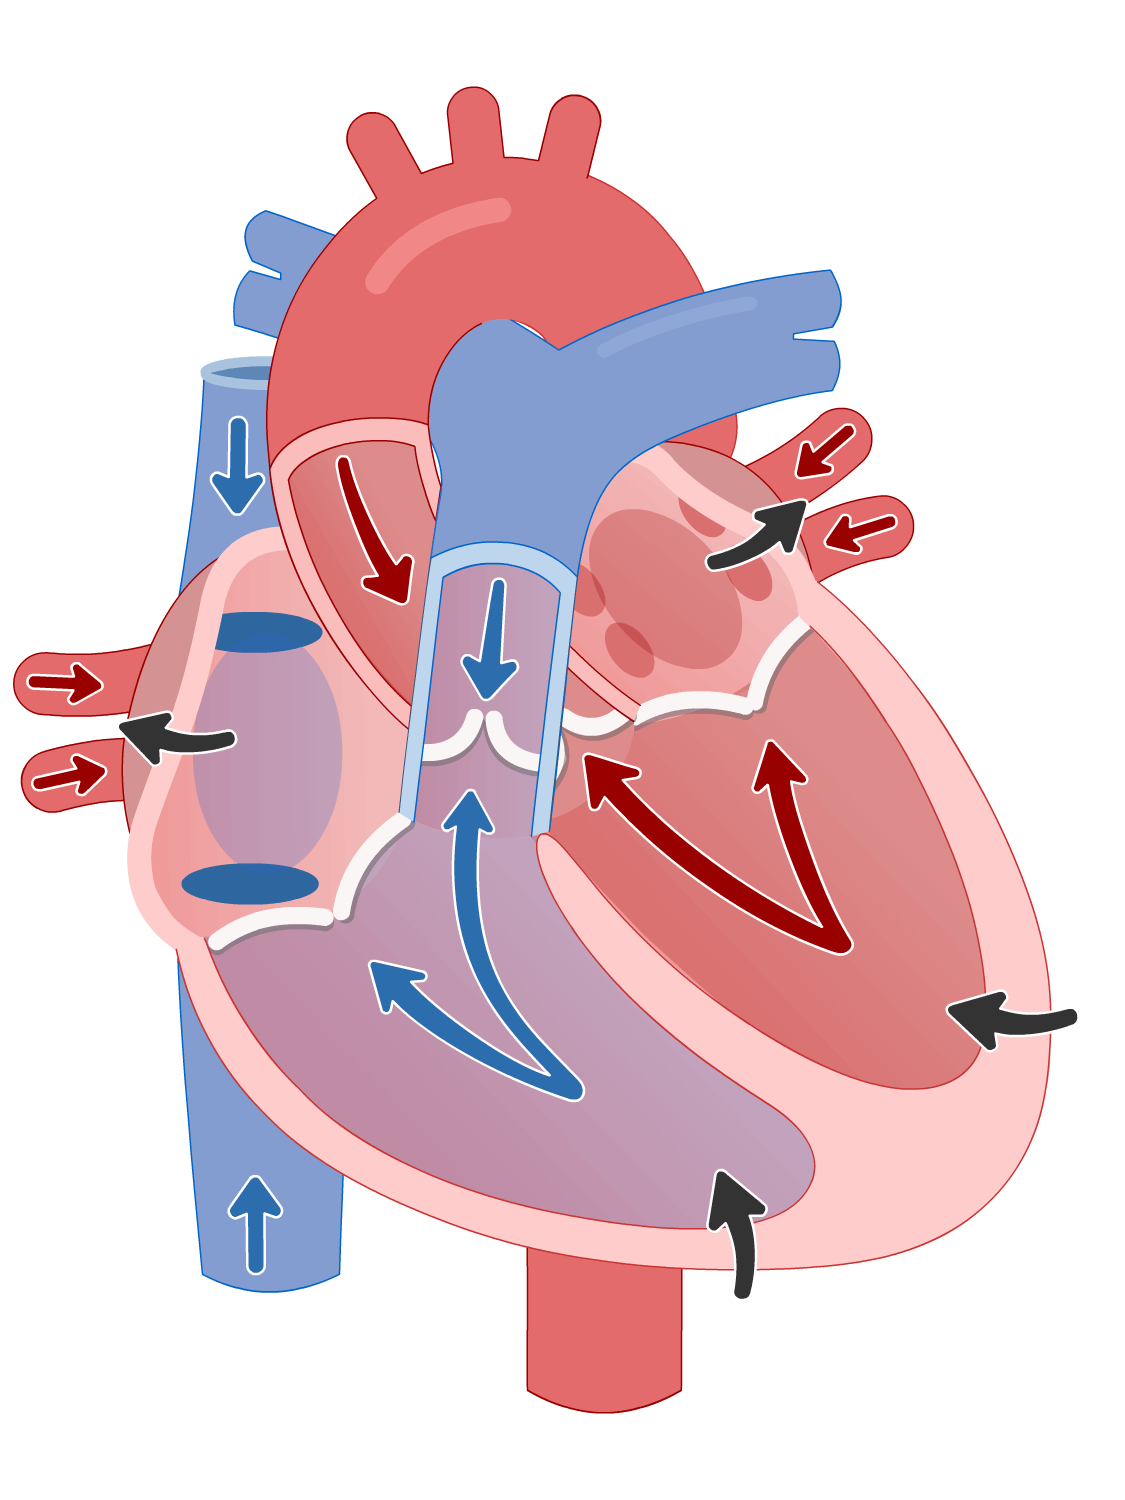 Cardiac cycle of the heart - ventricular isovolumetric (isovolumic) contractionphase